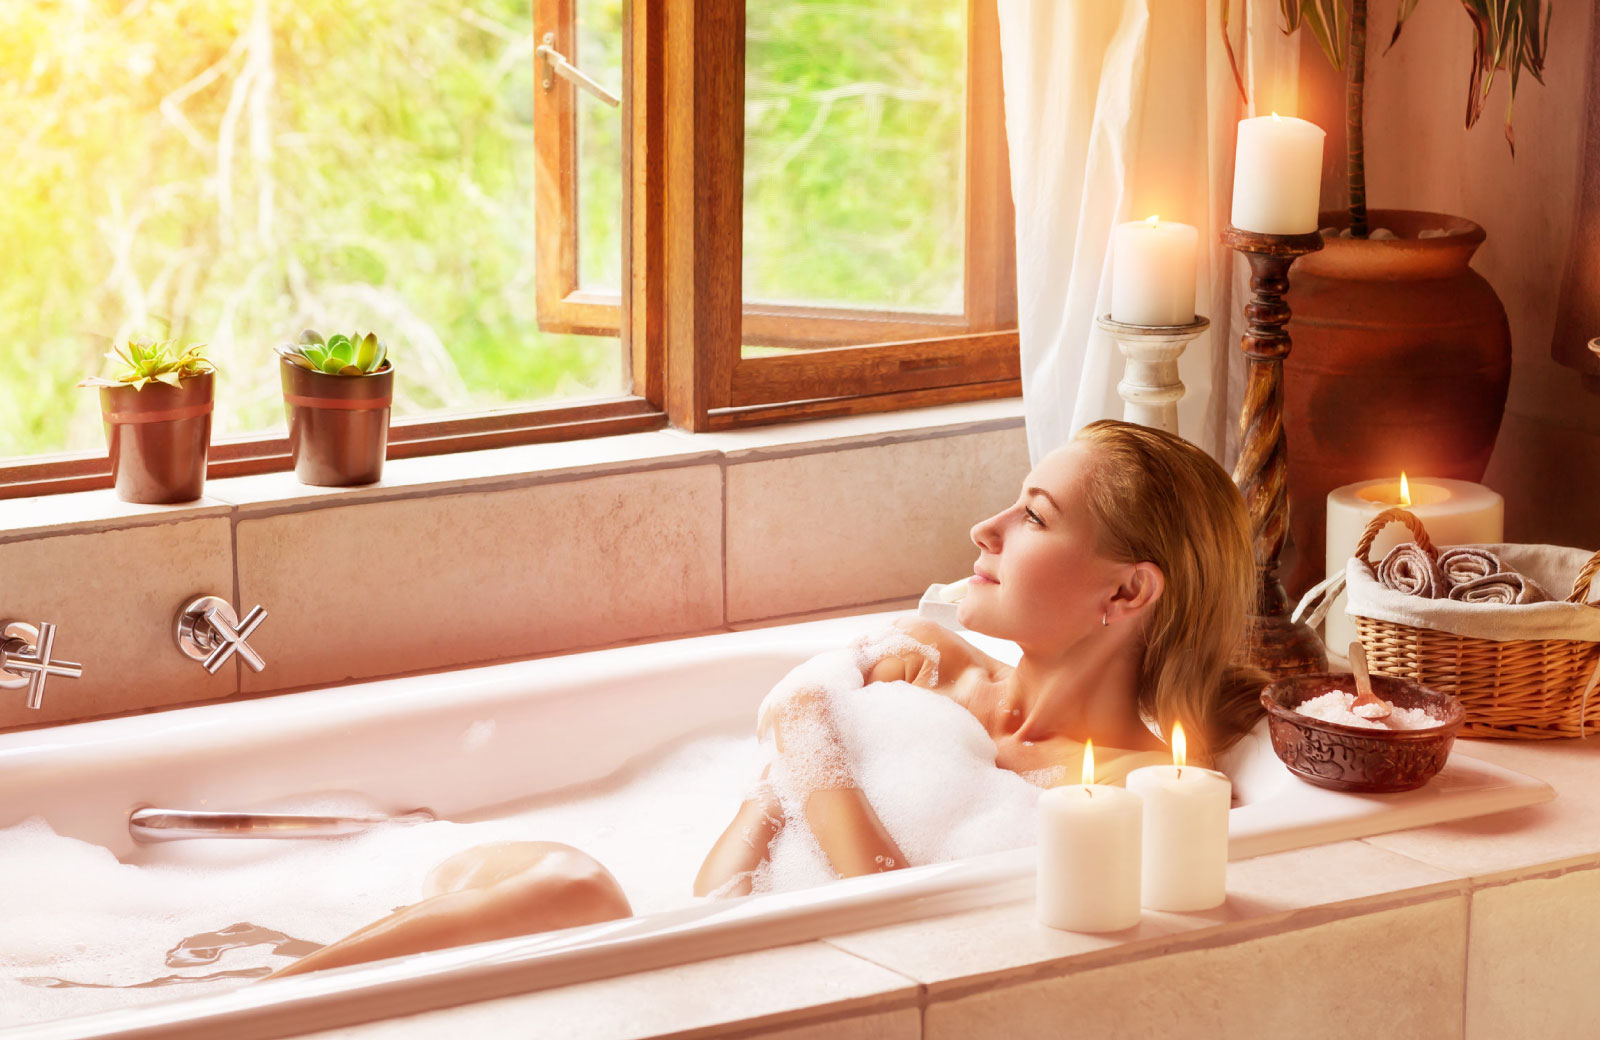 woman relaxing in a bath tub